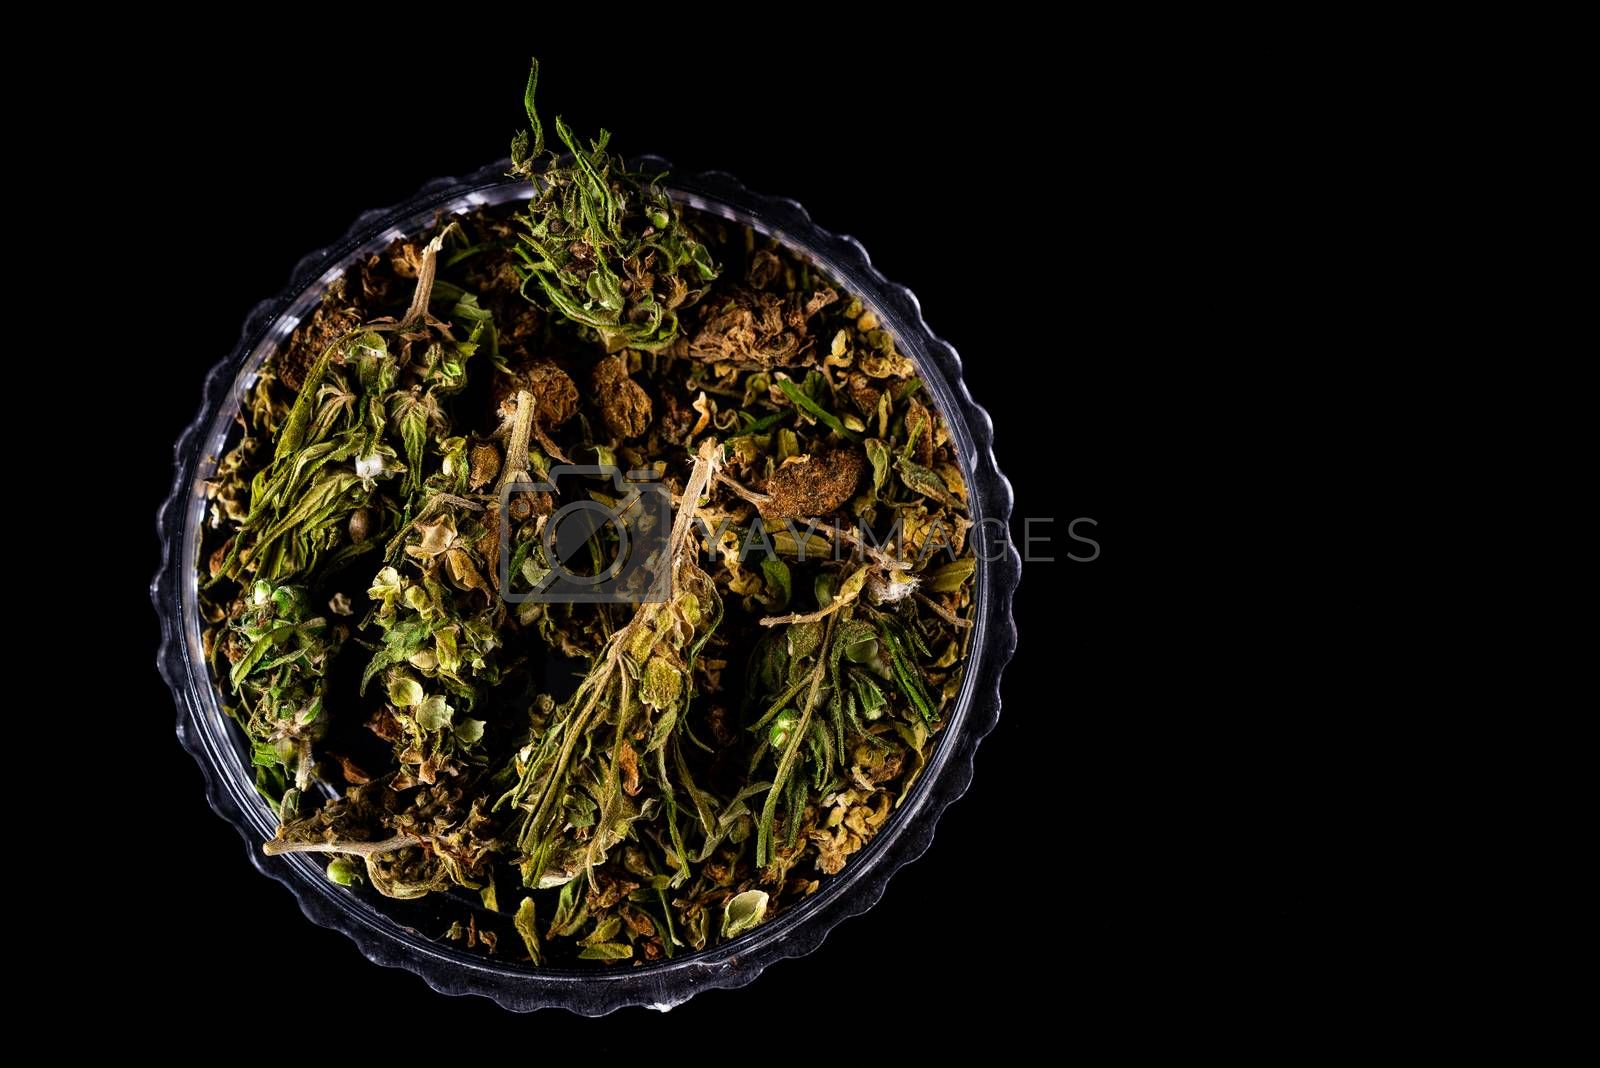 Cannabis Flower Buds in Glass Jar, Top Down Close Up. Dark Background. Medical Marijuana Concept.